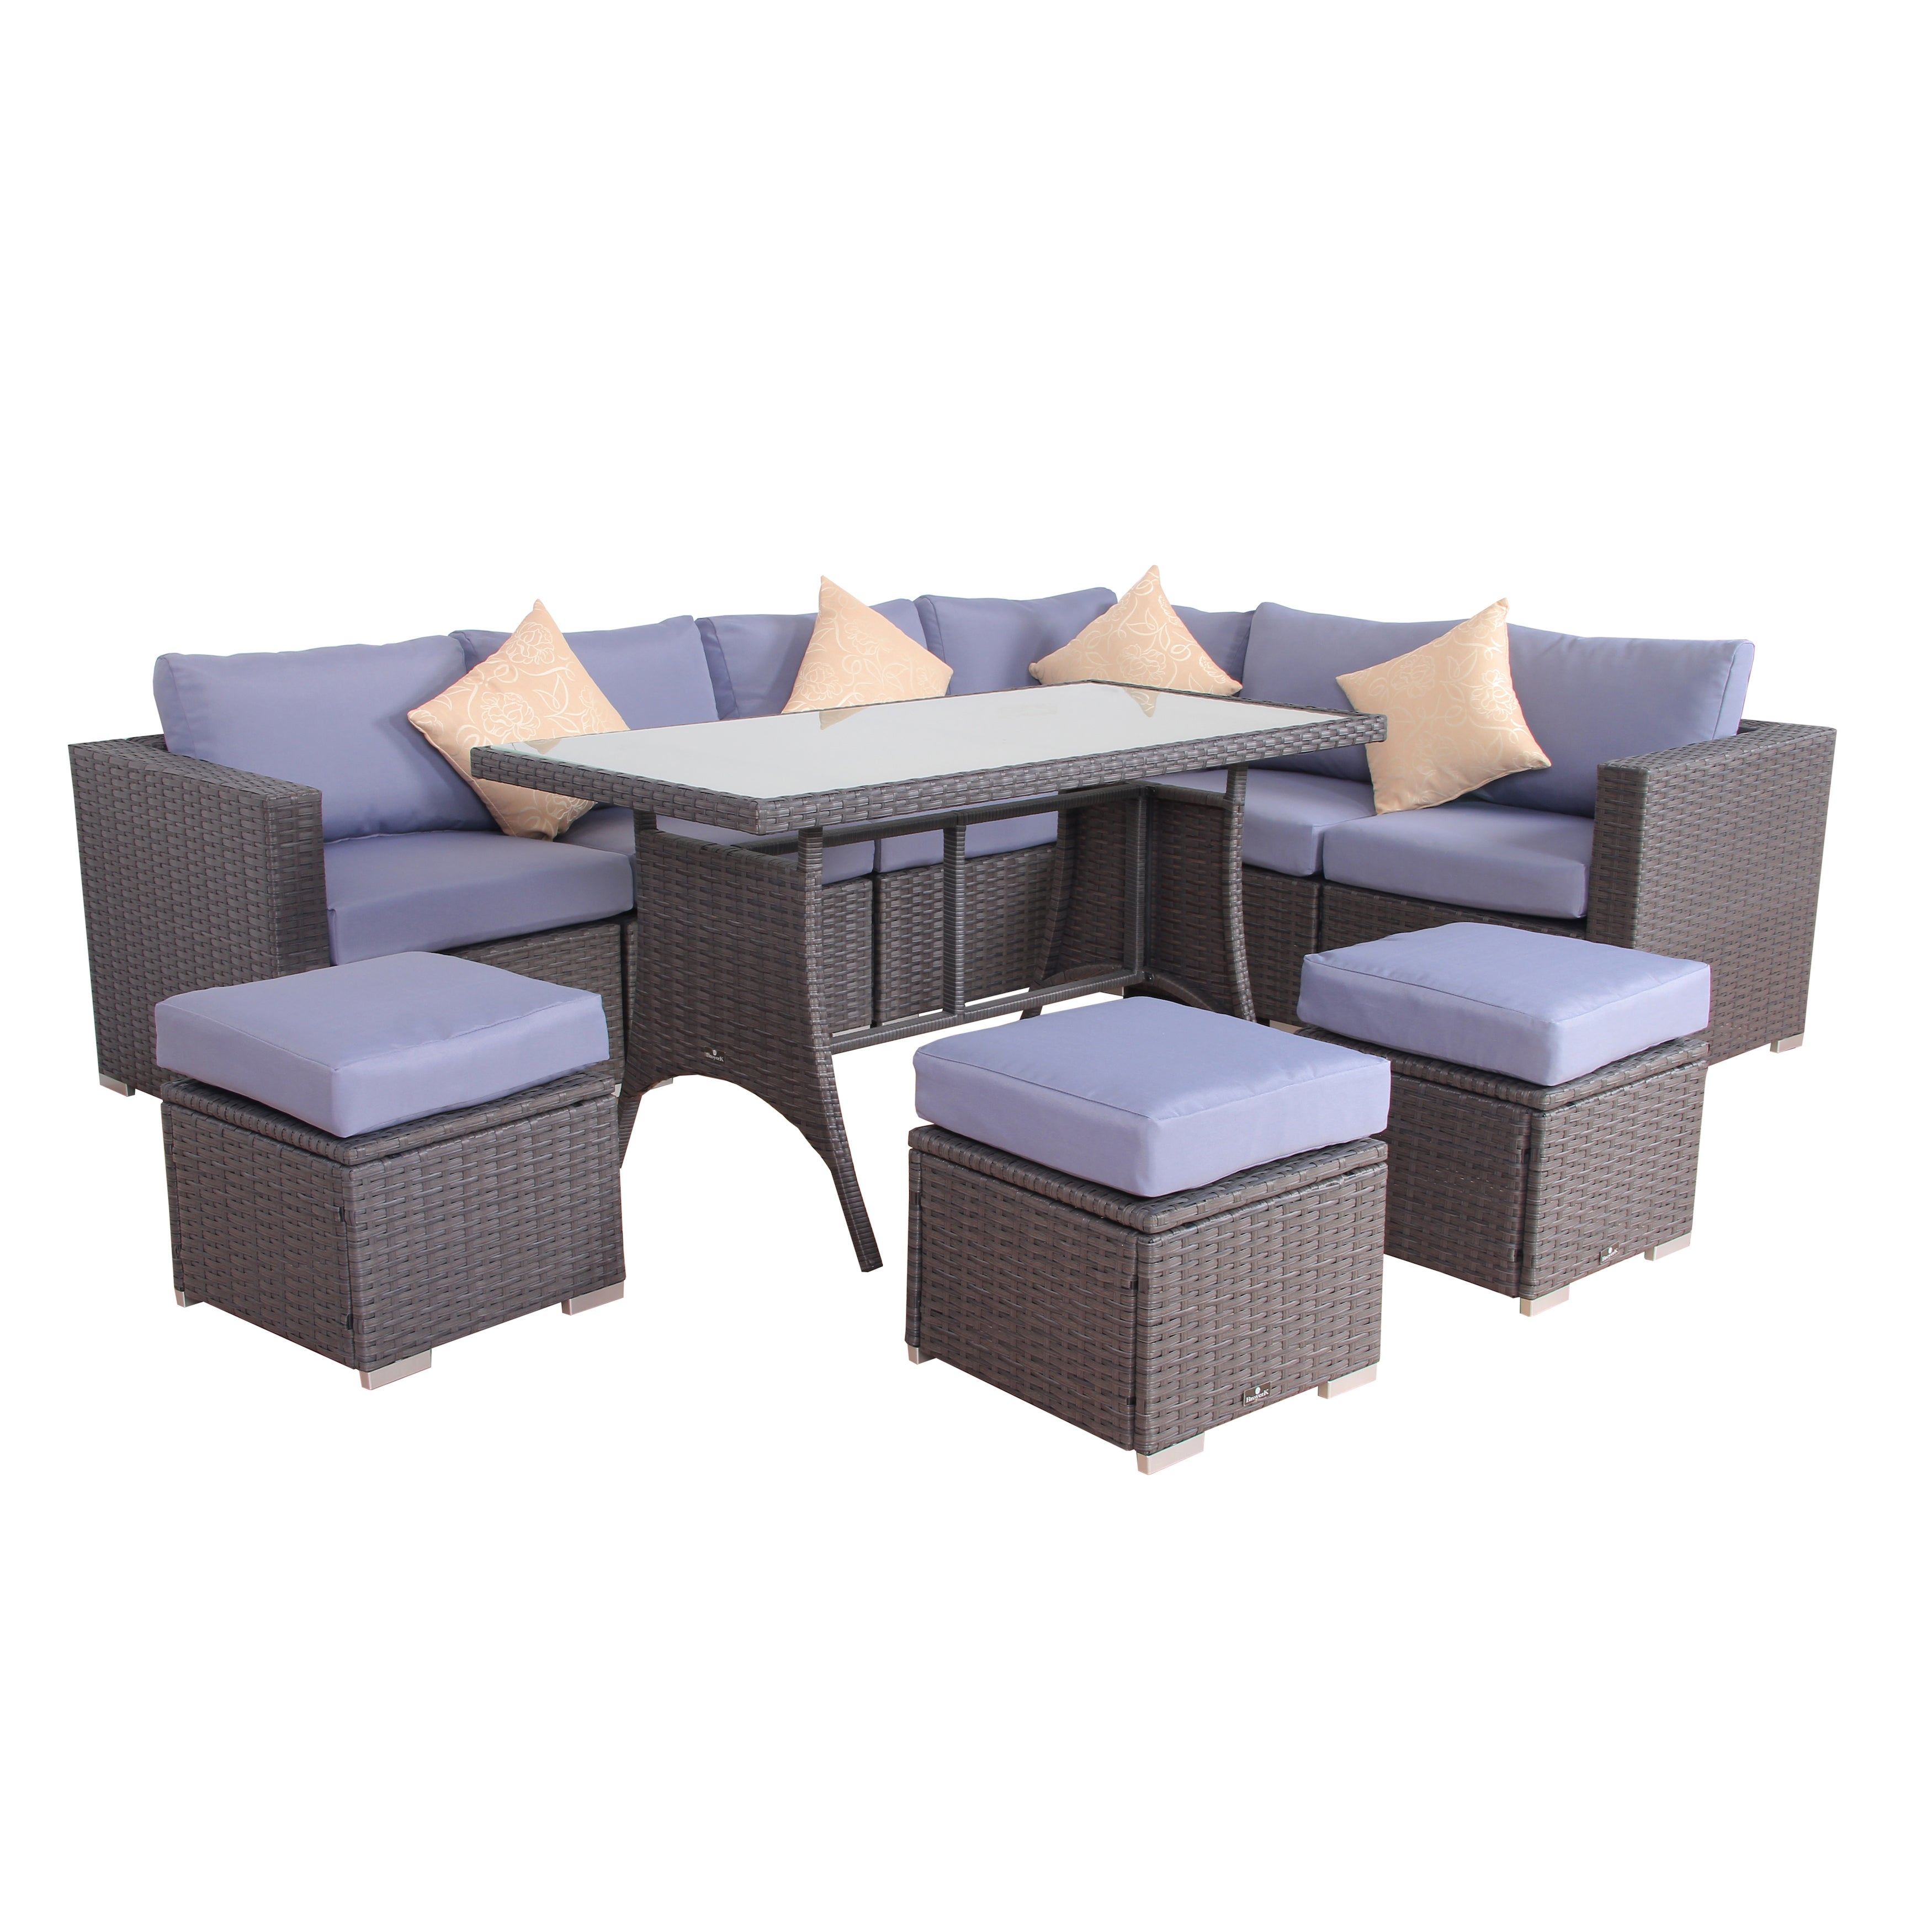 Broyerk Blue Grey Rattan 10 Piece Patio Furniture Set Free Shipping Today 11961484